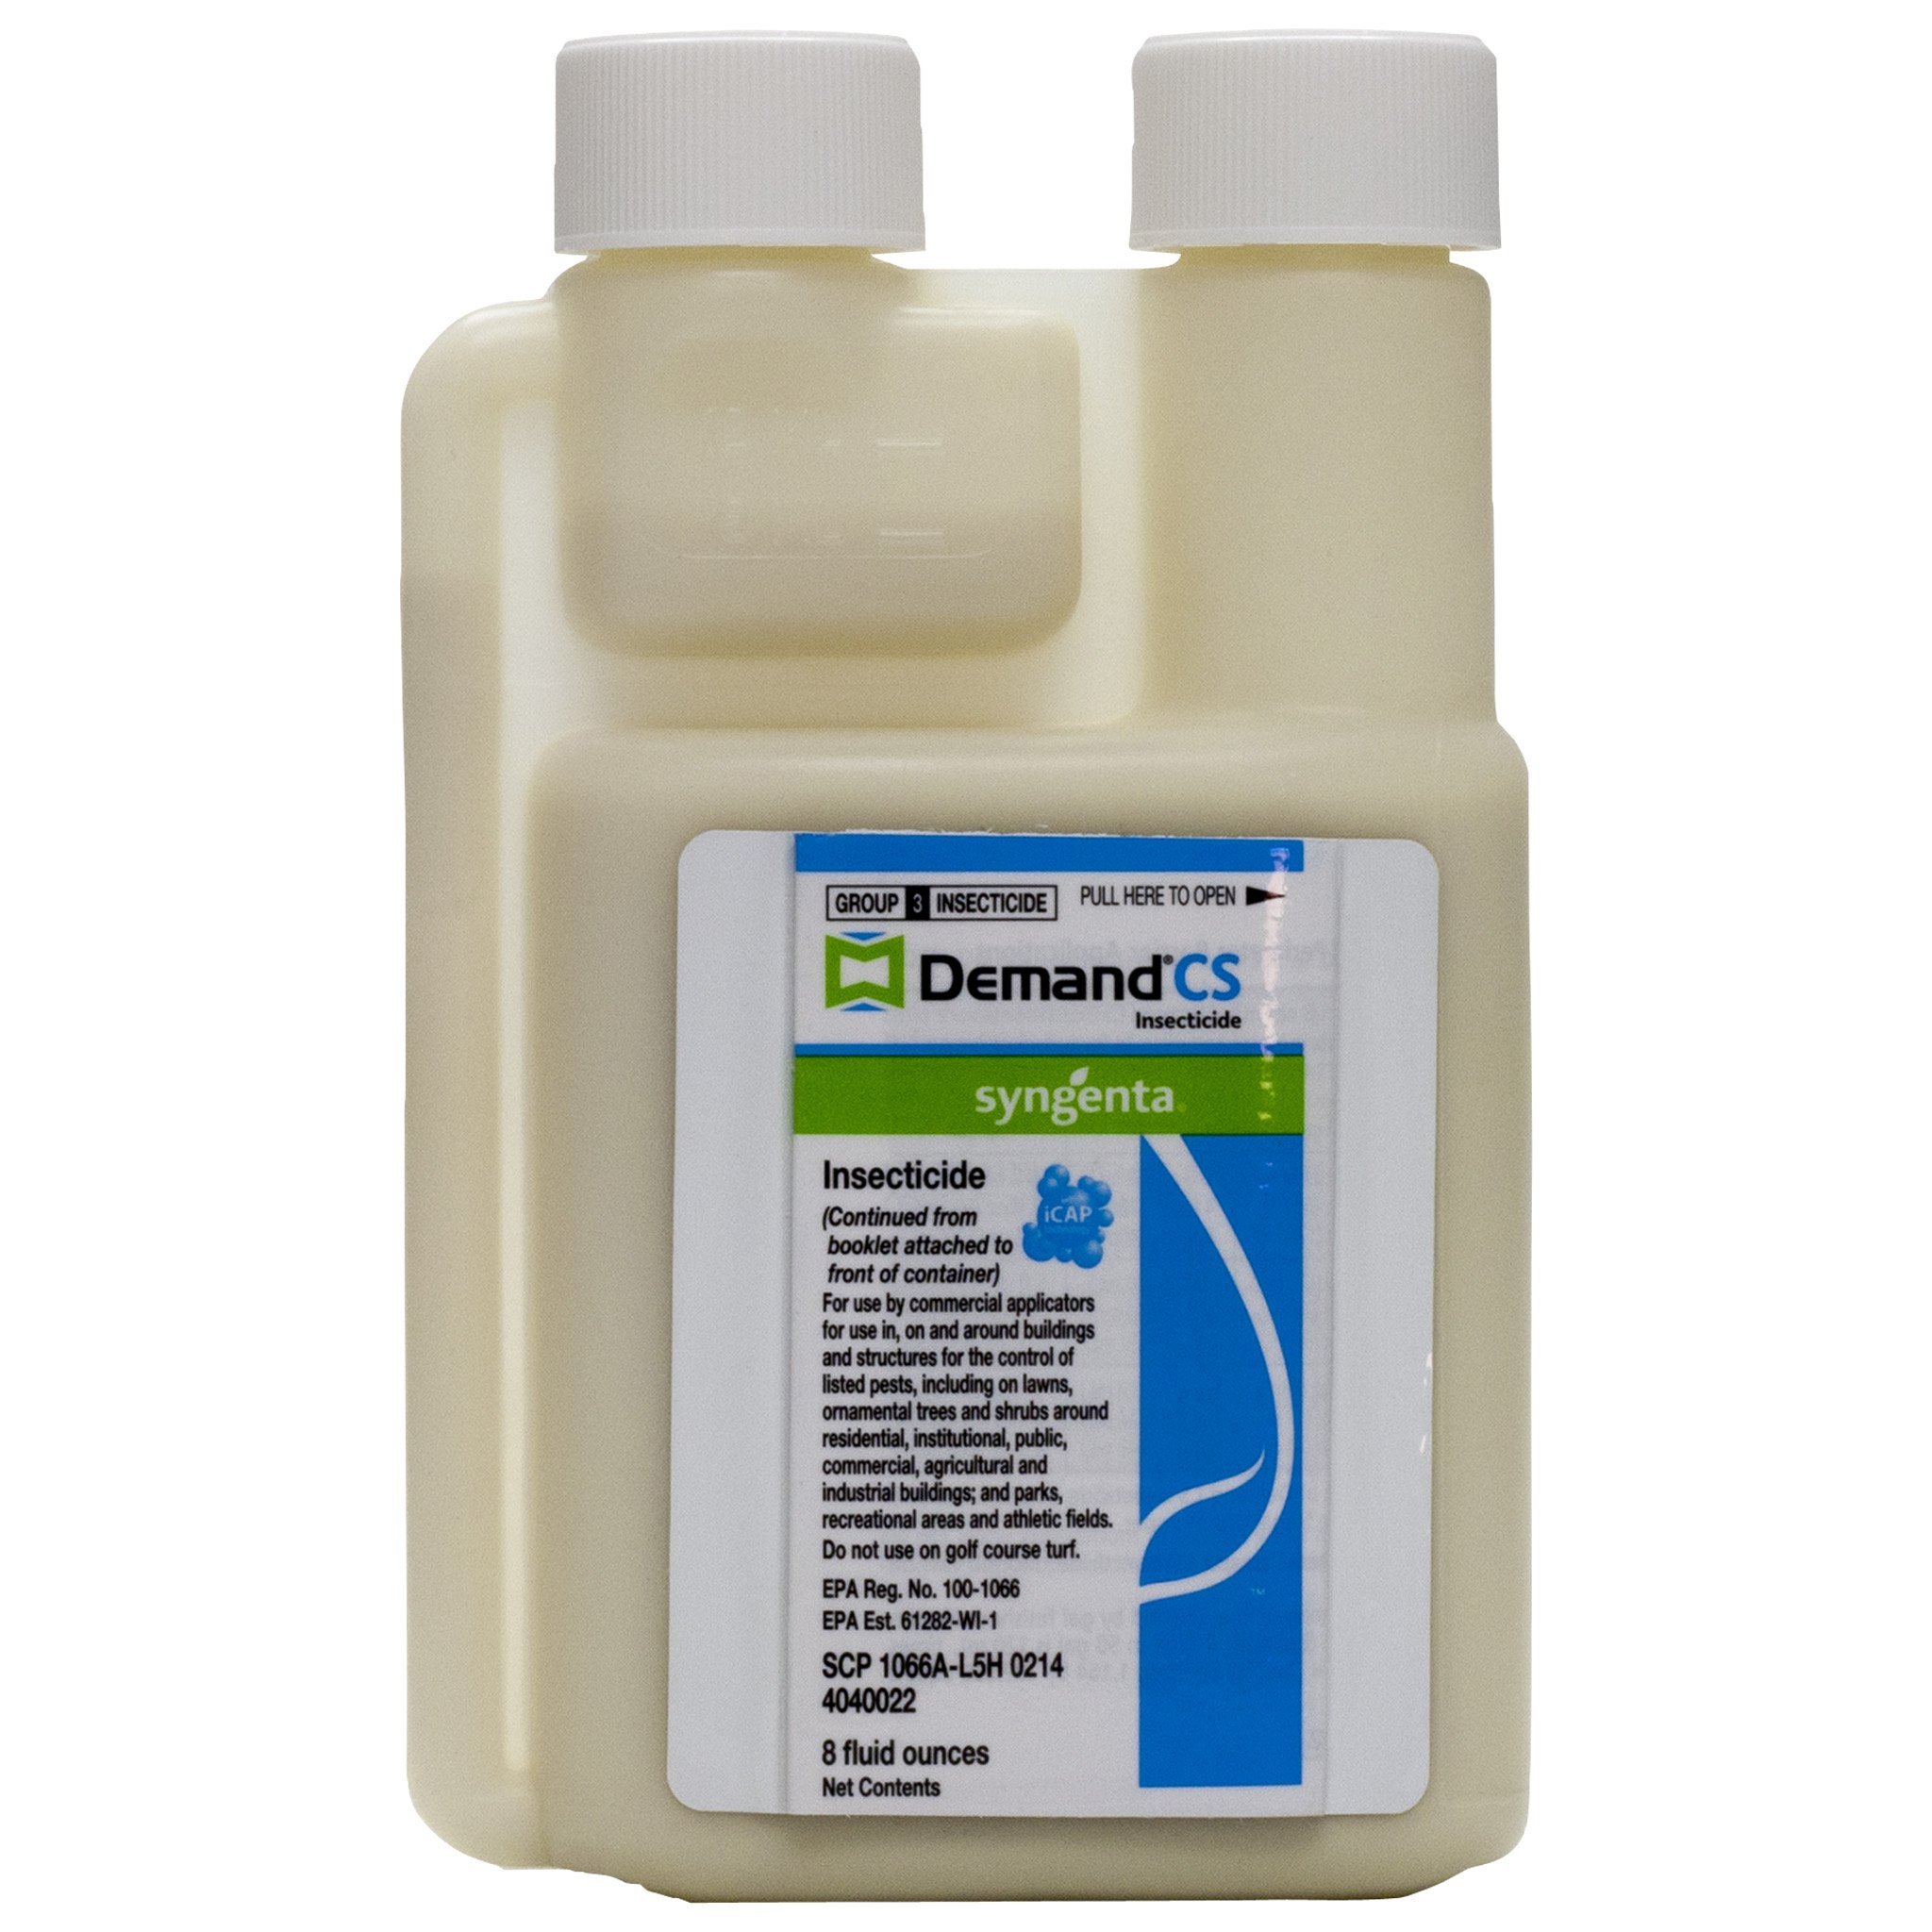 Syngenta Demand Cs -(8 Oz) - Bed Bugs,carpenter Bees,ants,spiders,spiders,professional Pest Control Products.